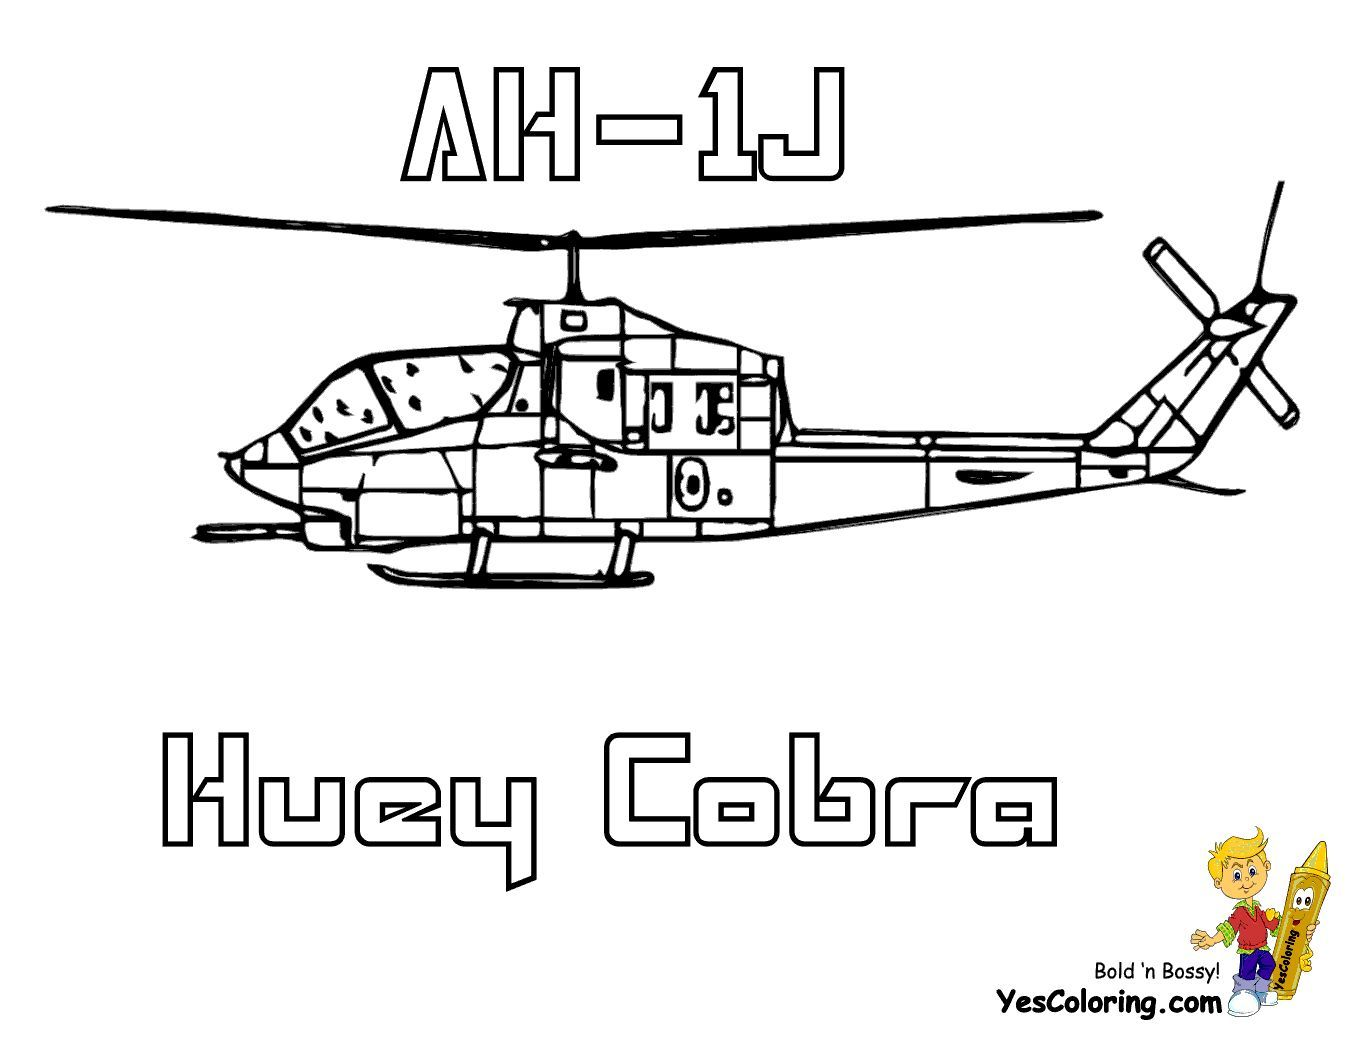 Print Out This Rugged Huey Cobra Helicopter Coloring Page Tell